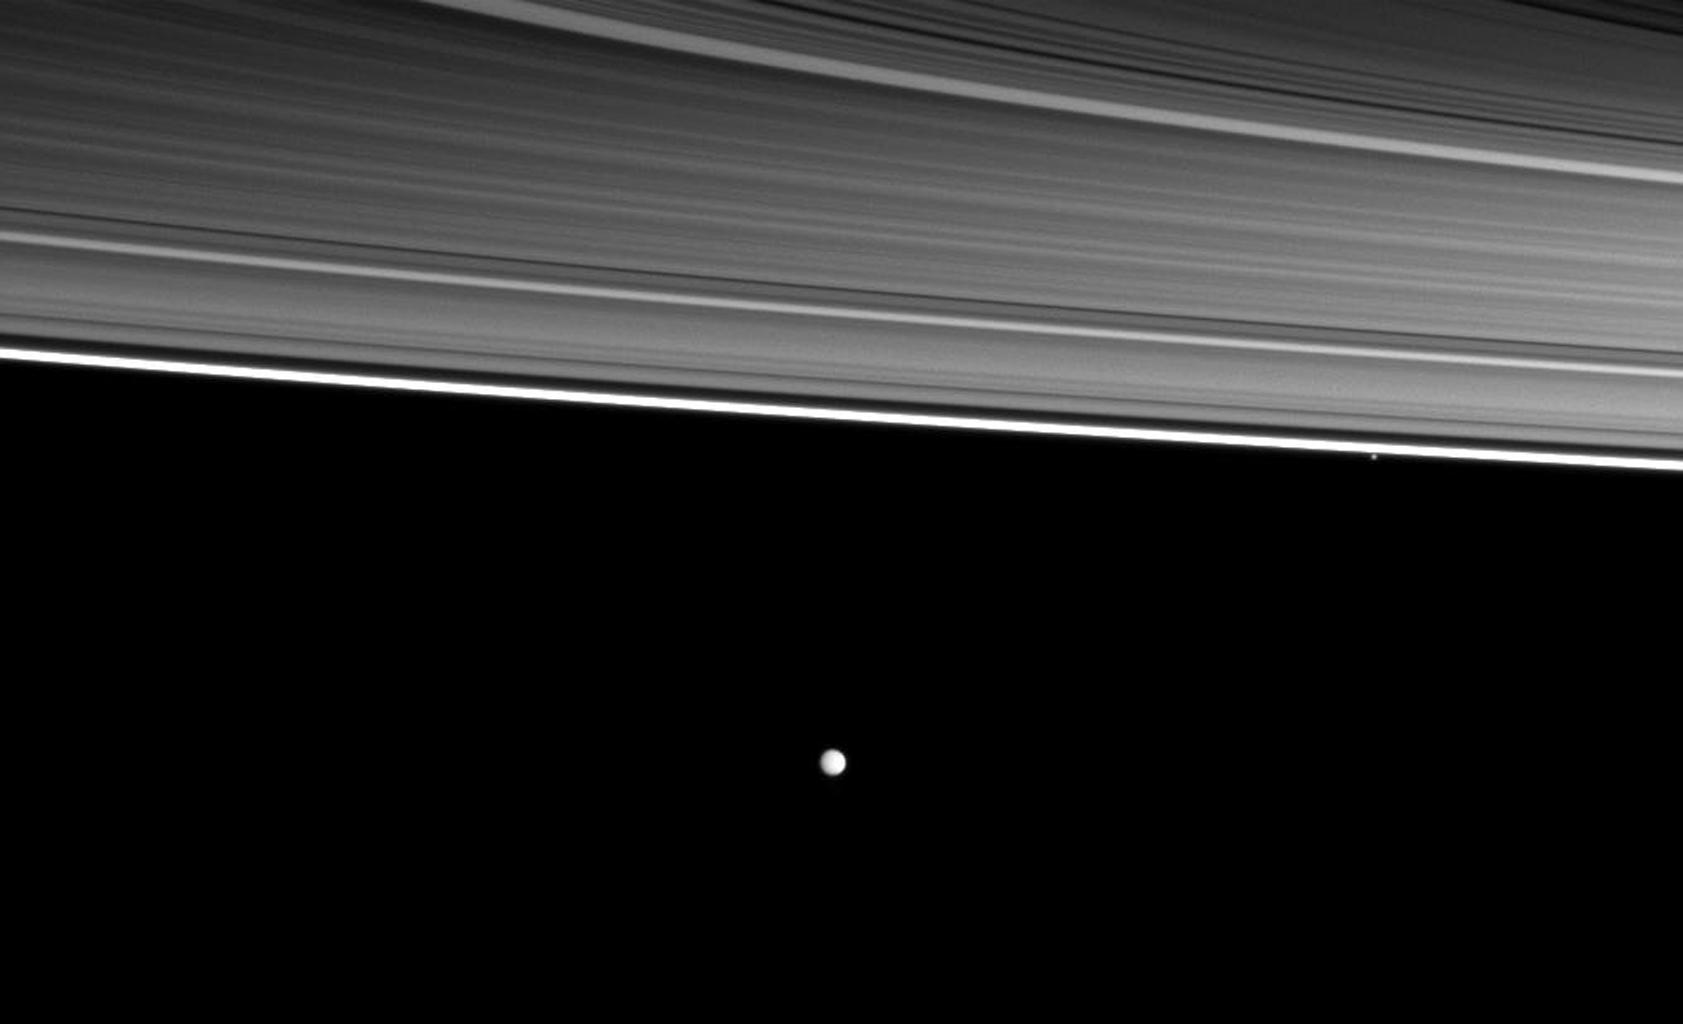 Two of Saturn's moons orbit beyond four of the planet's rings in this image from NASA's Cassini spacecraft. From the top right of the picture are the C, B, A, and thin F rings, the small moon Pandora and, near the middle of the image, the moon Enceladus.